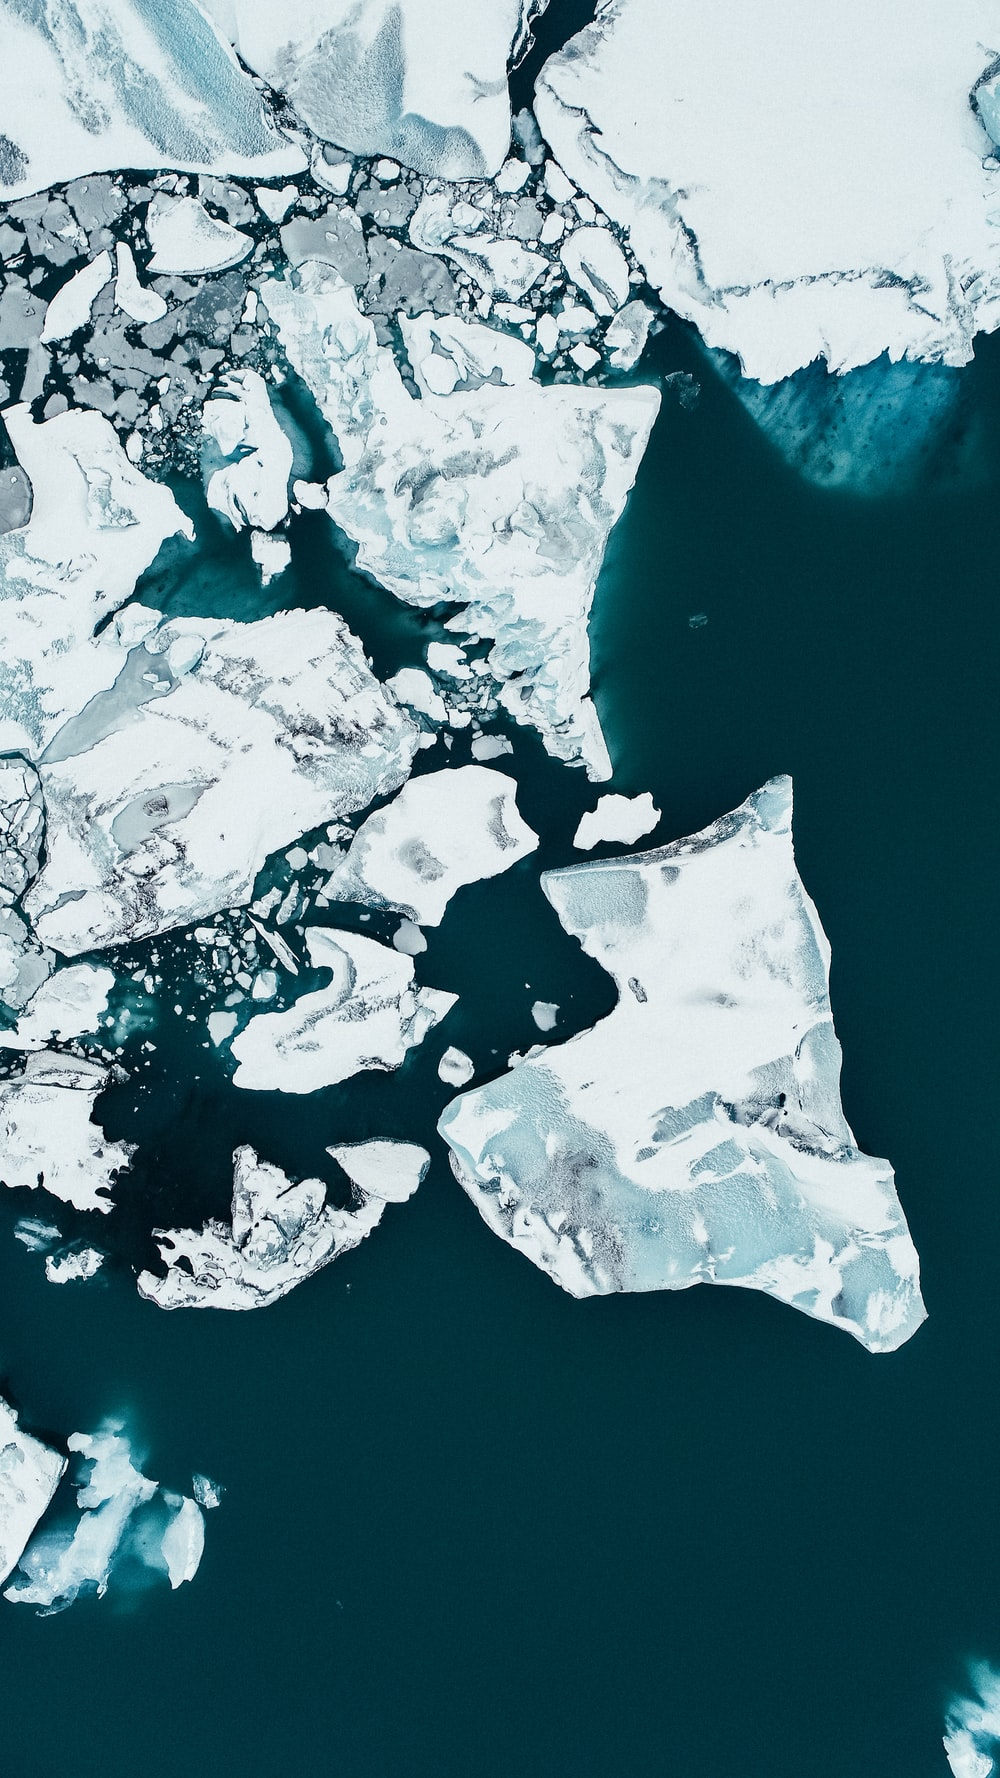 white ice on body of water during daytime